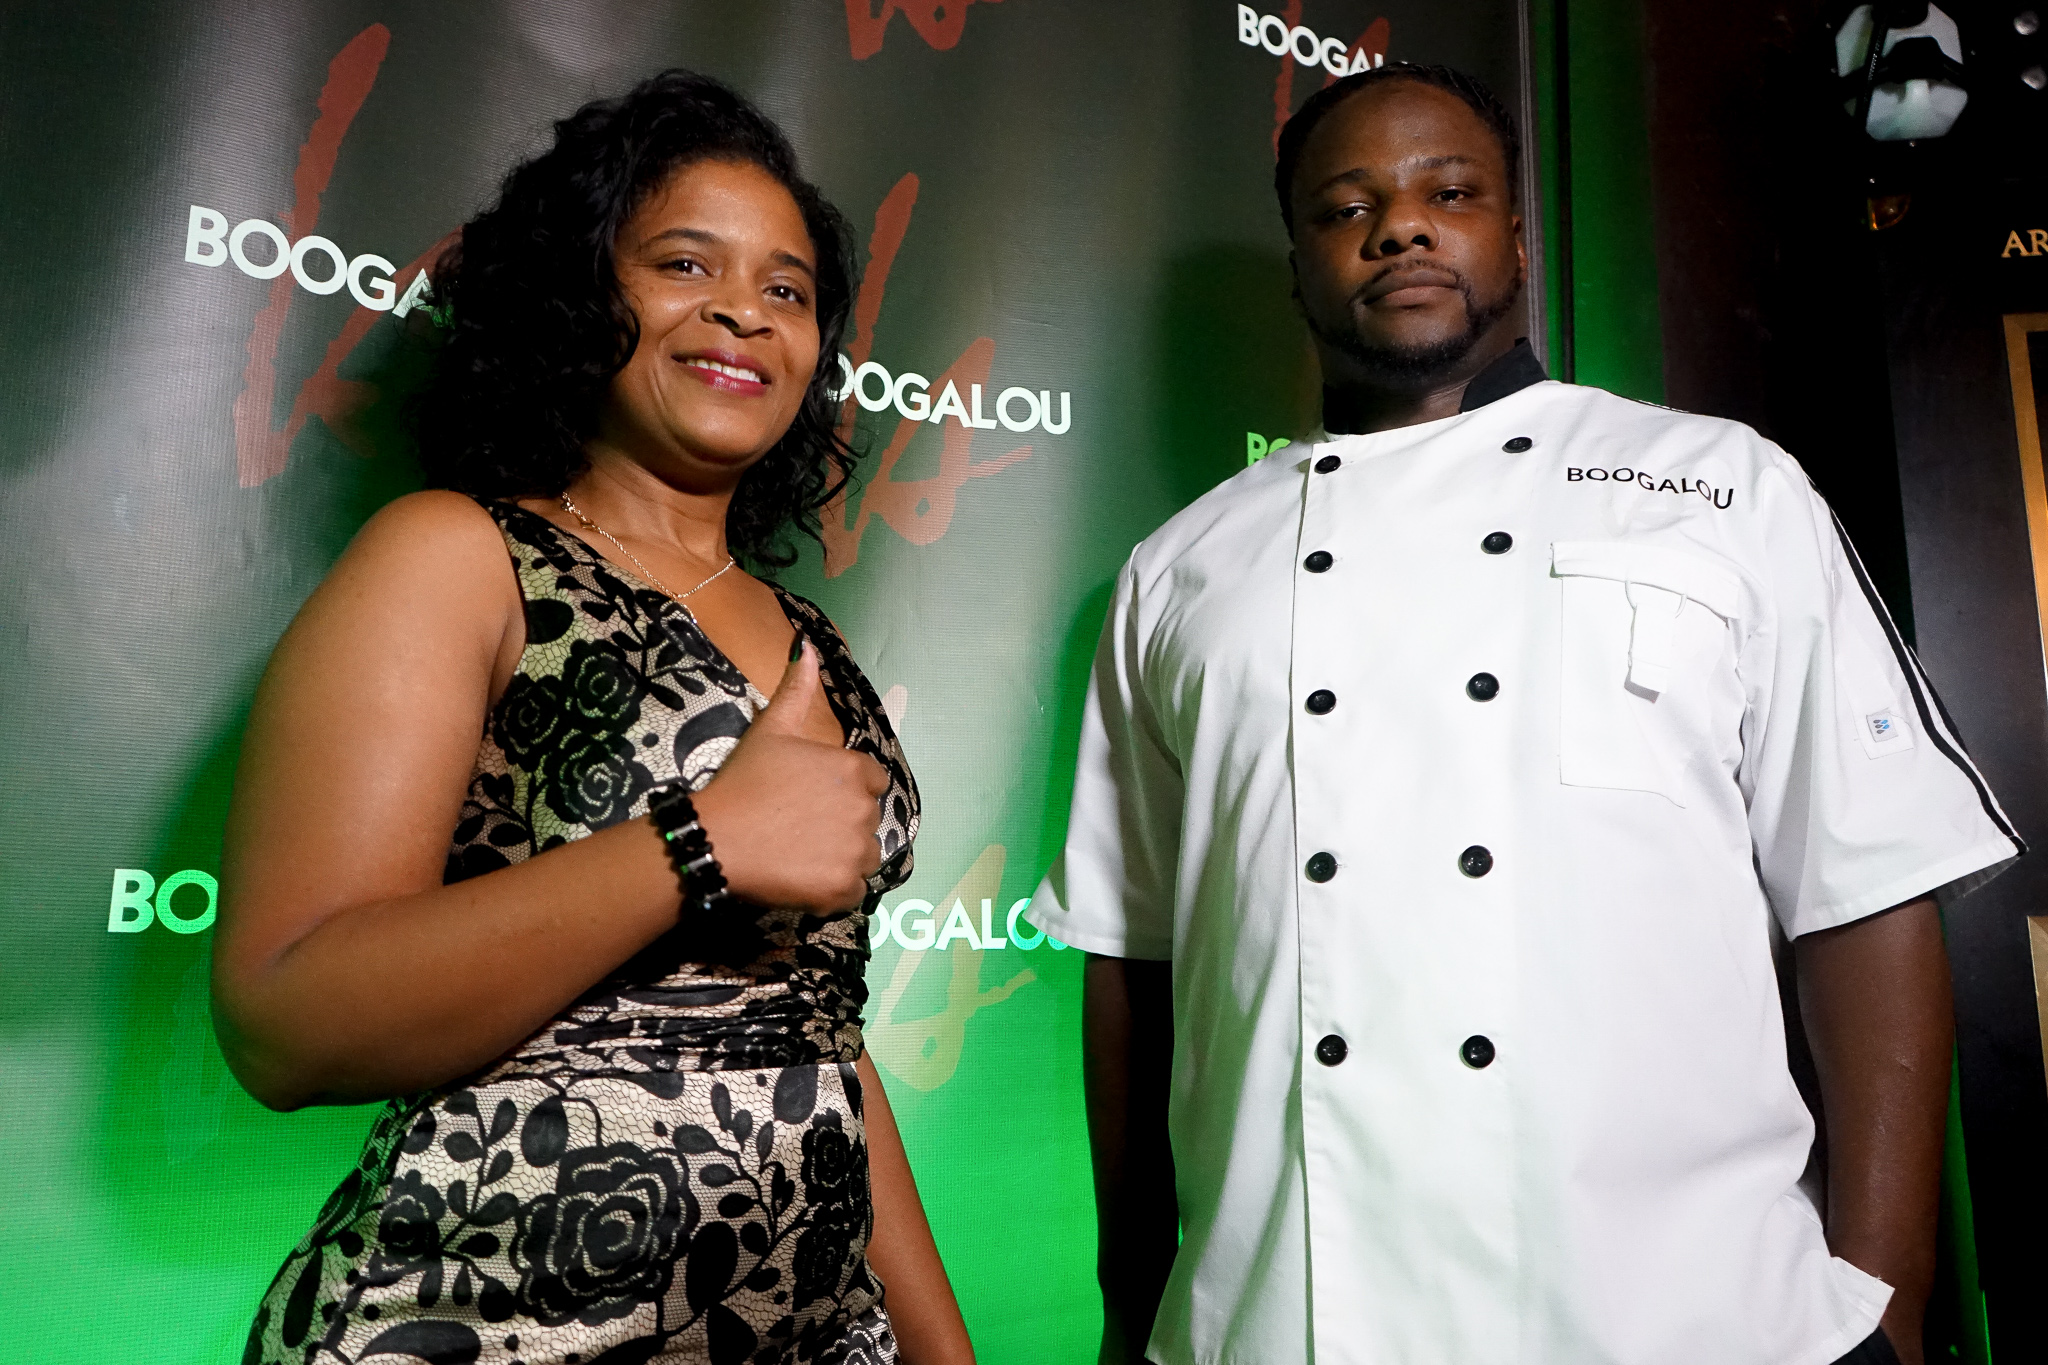 I thought this was a pretty boss picture of Jackie and Chef!